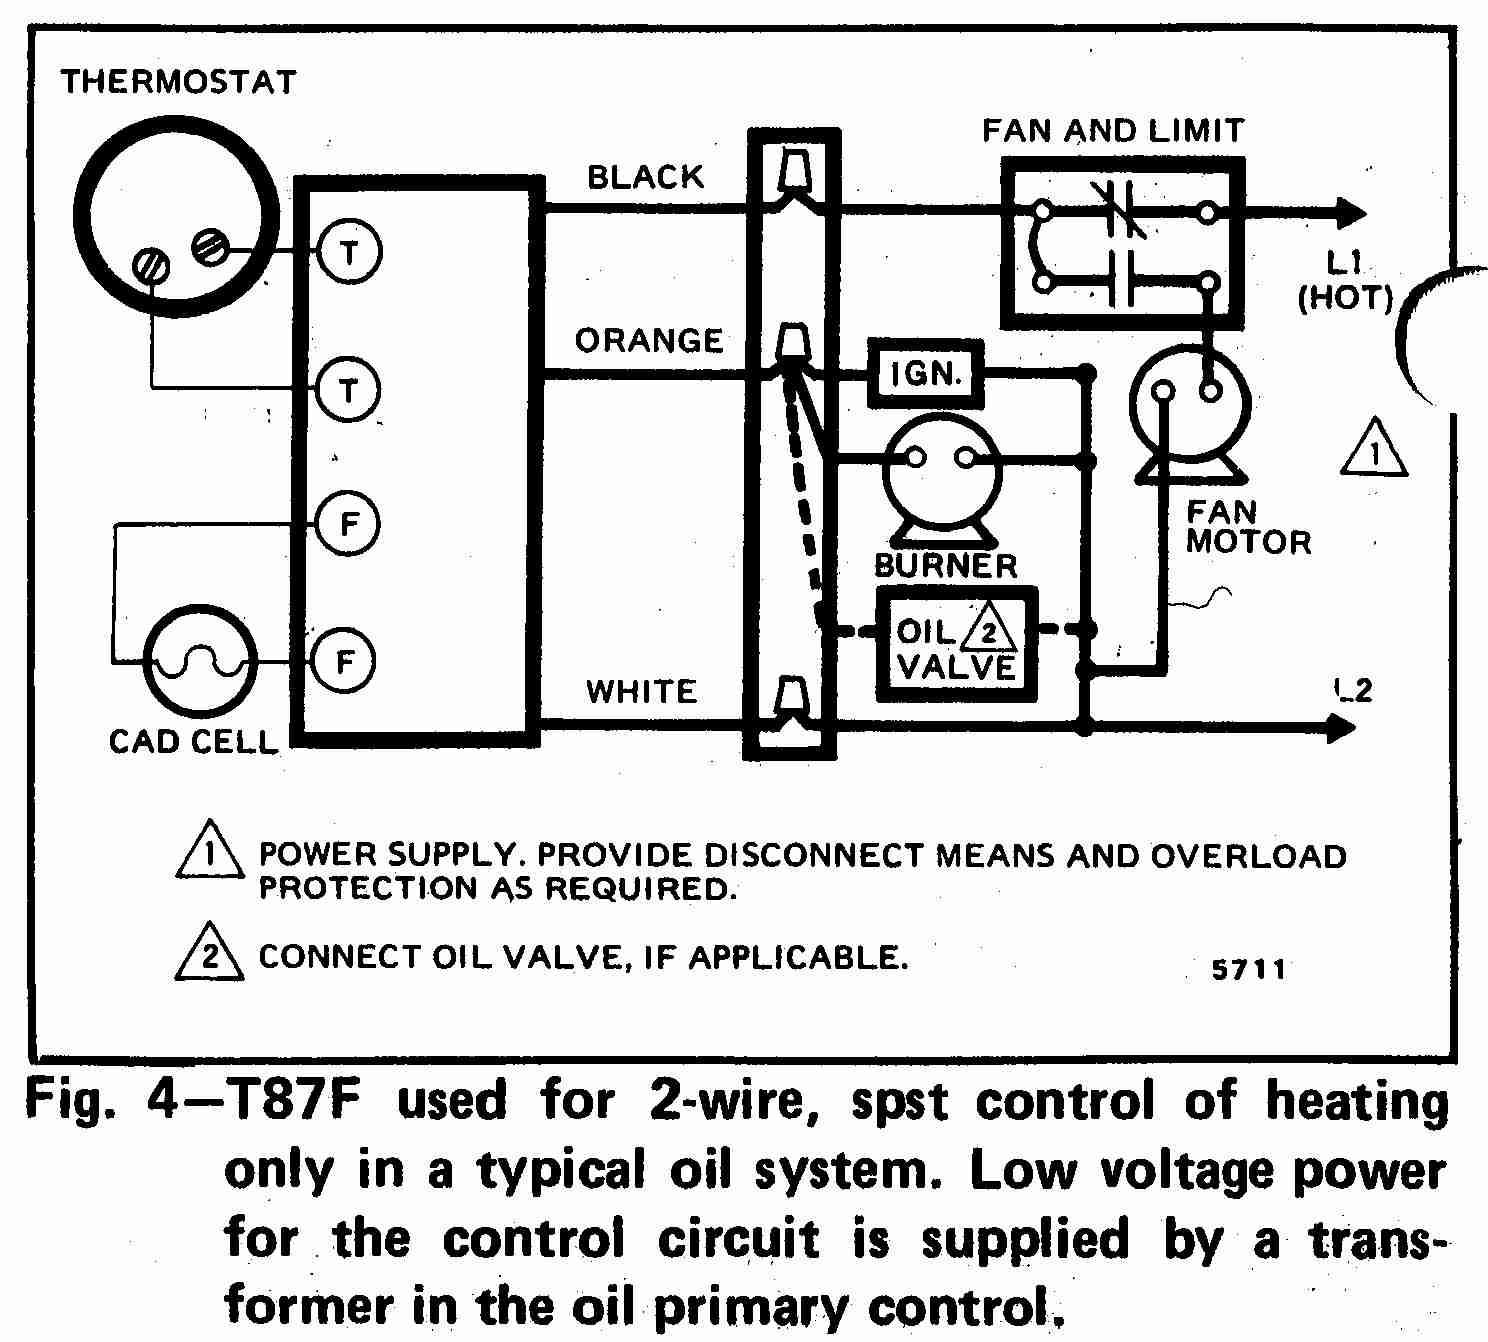 Ge Thermostat Wiring Diagram Free Picture Schematic - Wiring Data - Rheem Heat Pump Wiring Diagram